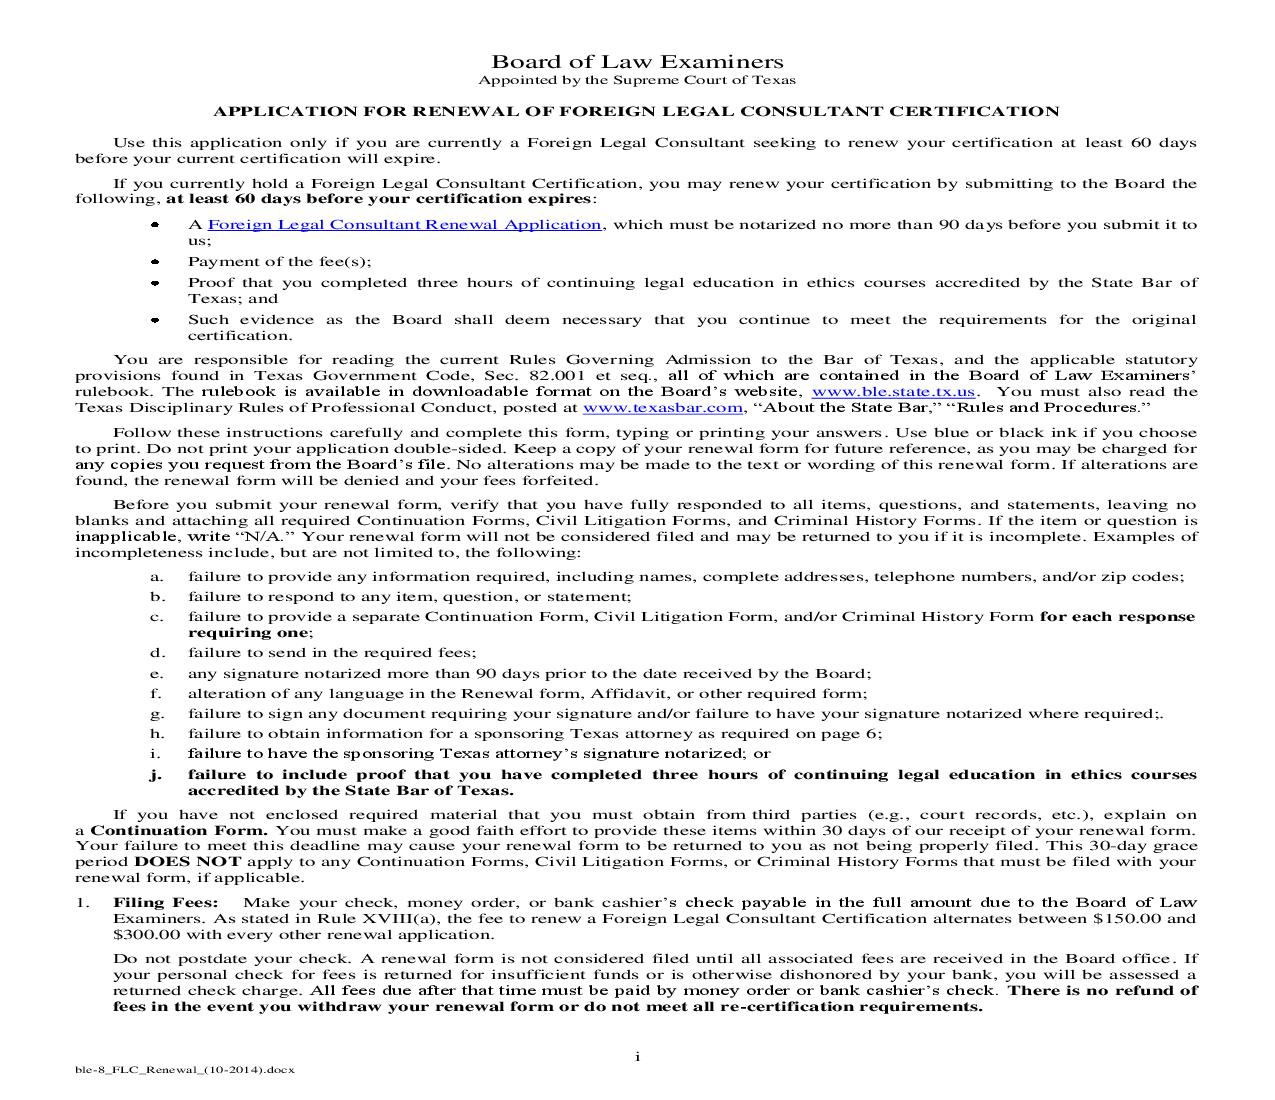 Application For Renewal Of Foreign Legal Consultant Certification   Pdf Fpdf Doc Docx   Texas